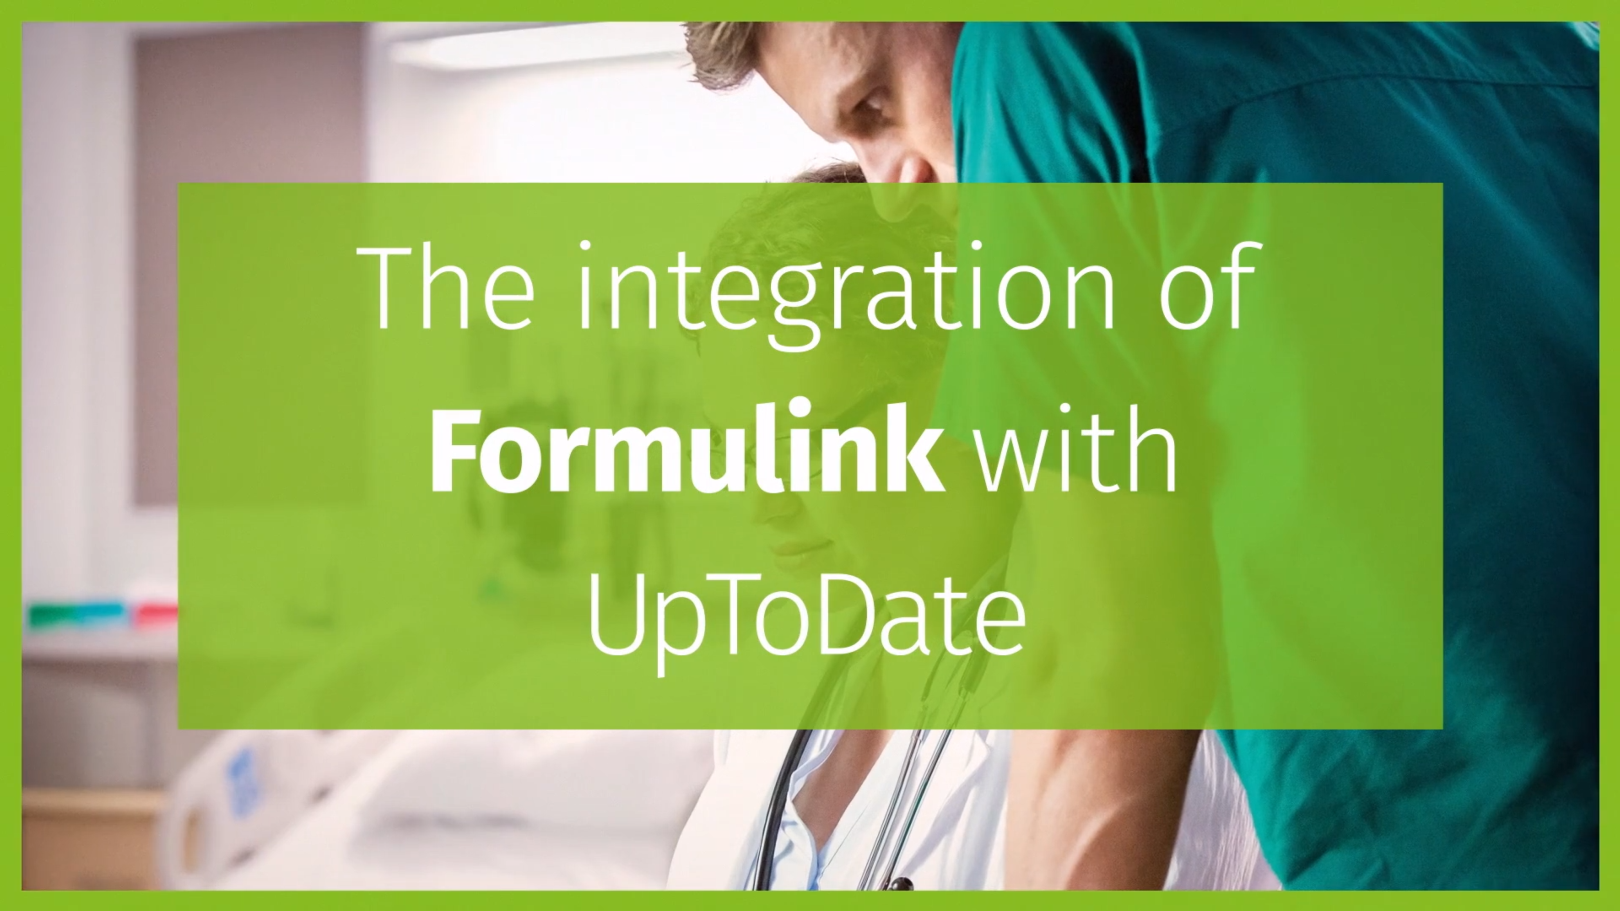 Formulink Integration within UpToDate, Wolters Kluwer